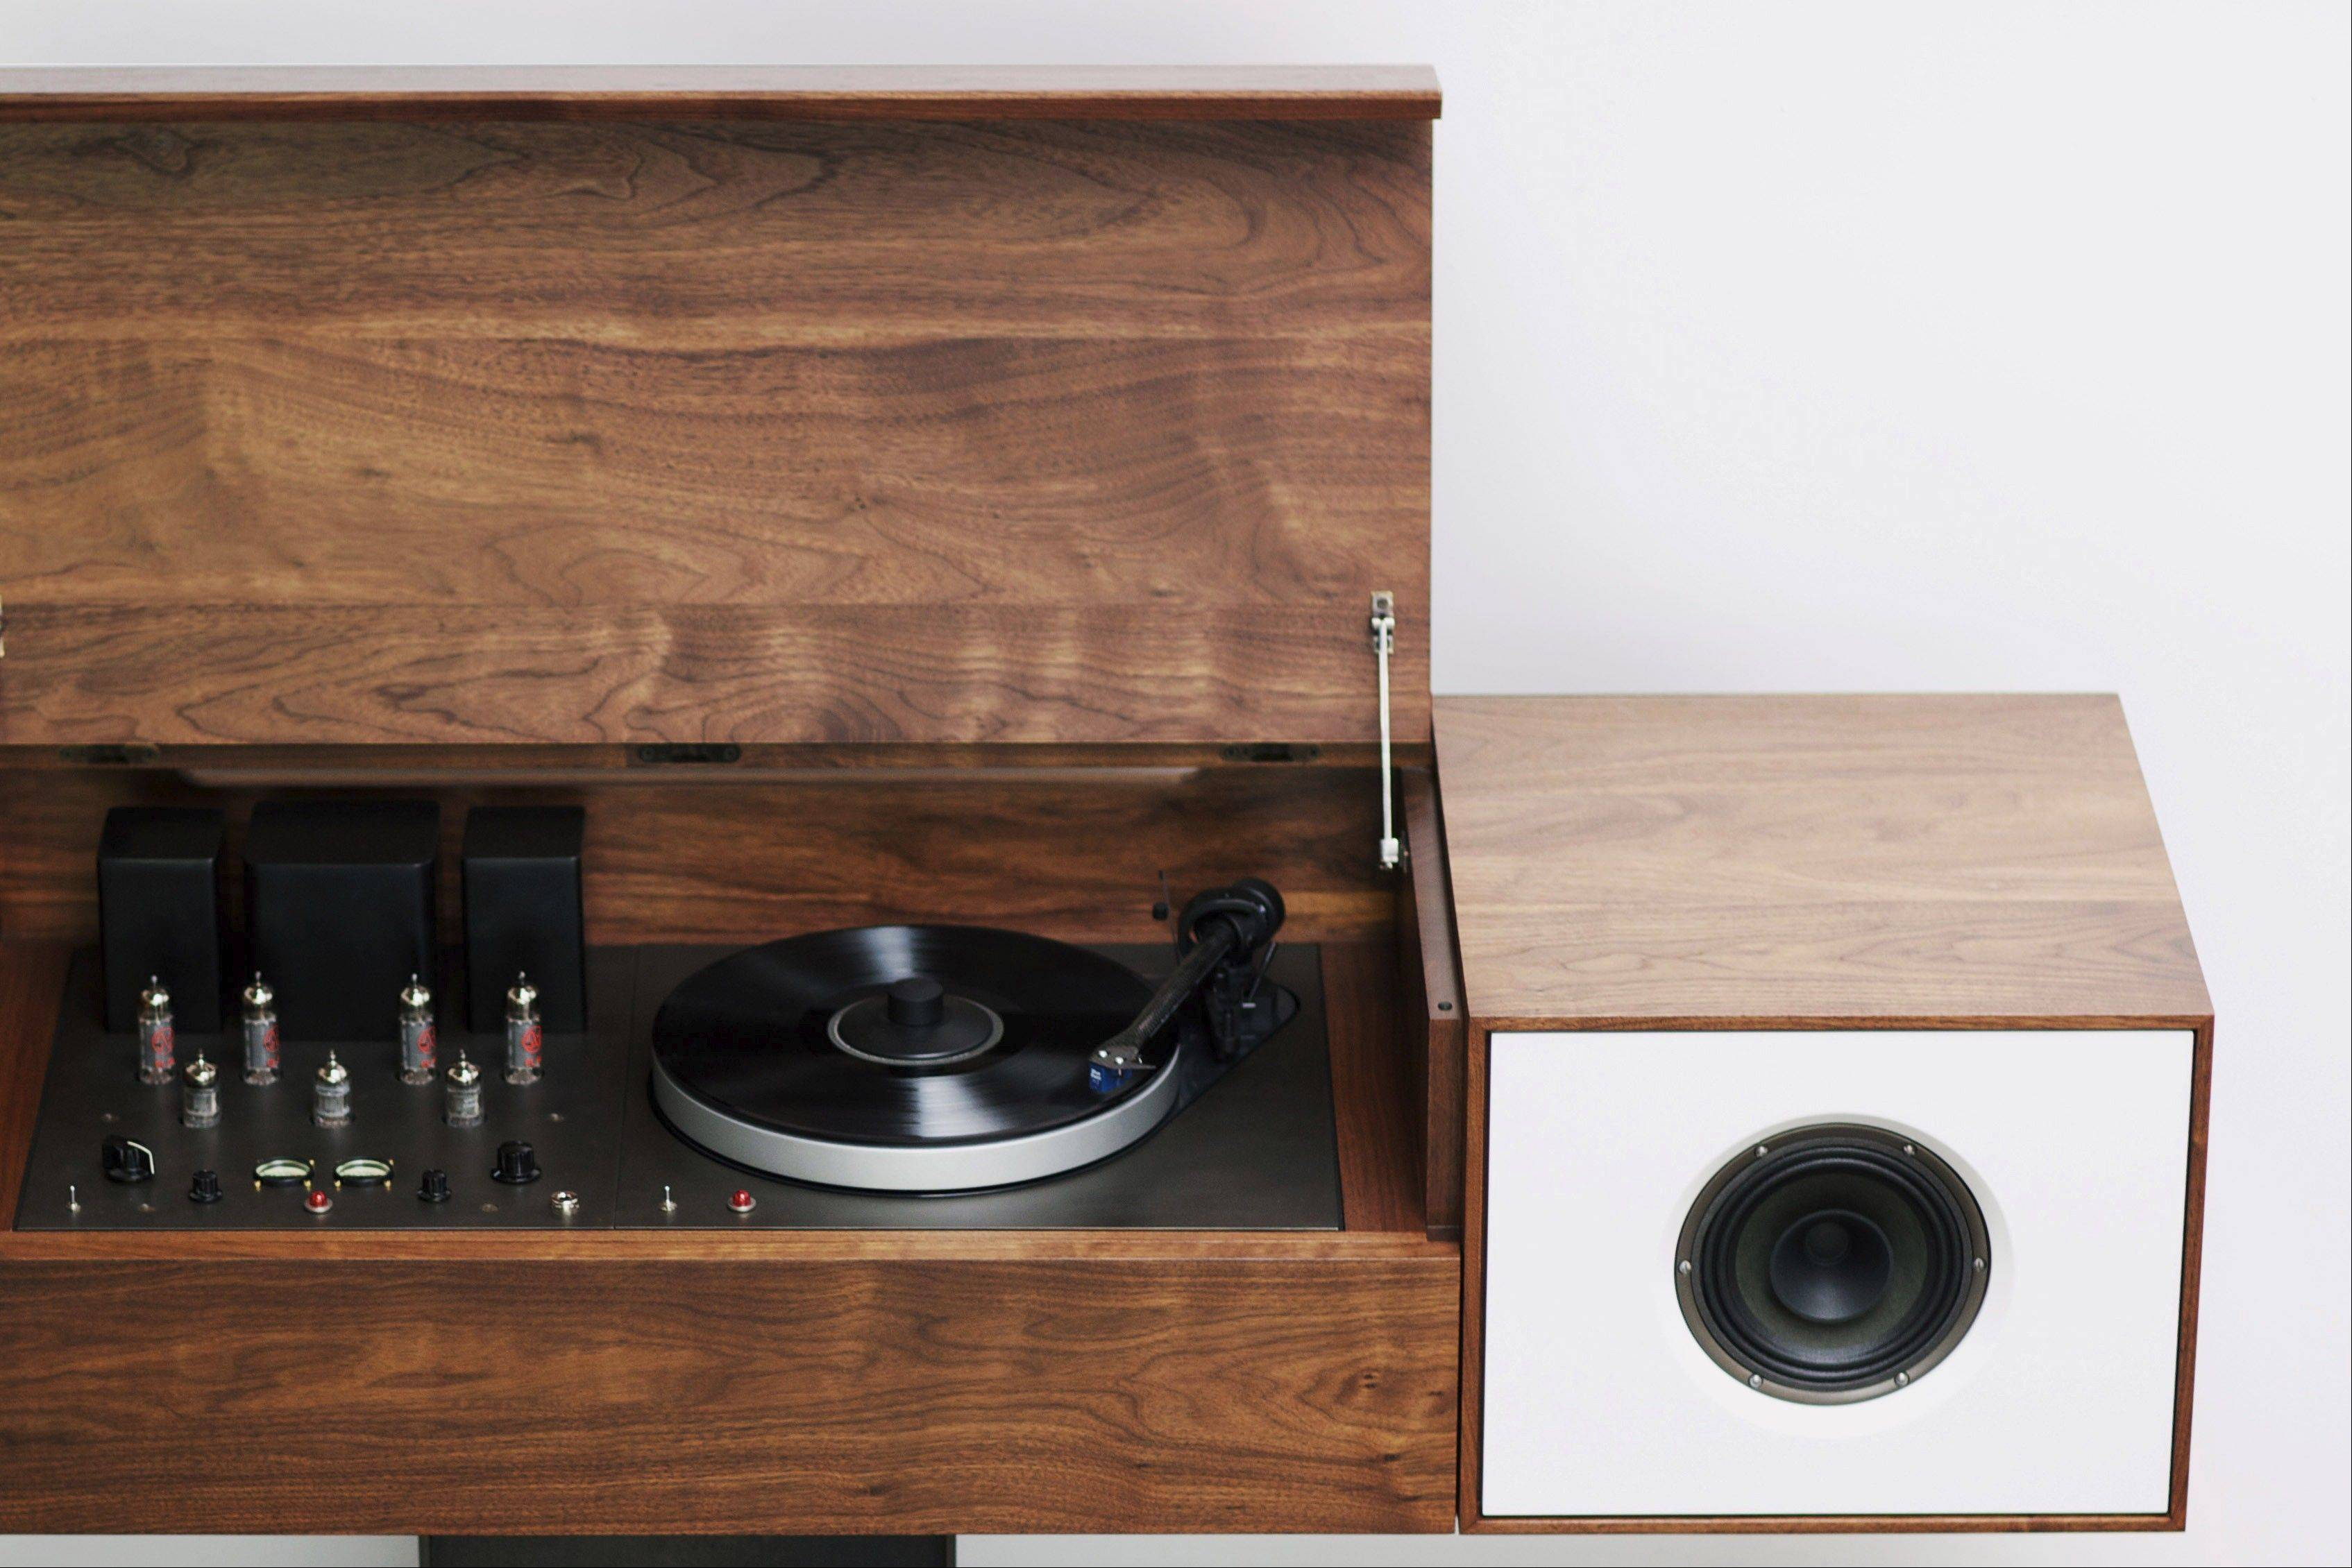 A new version of the retro hi-fi system, Symbol Audio's Modern Record Console, has a walnut cabinet outfitted with a hand-built turntable, amplifier and built in wireless router.